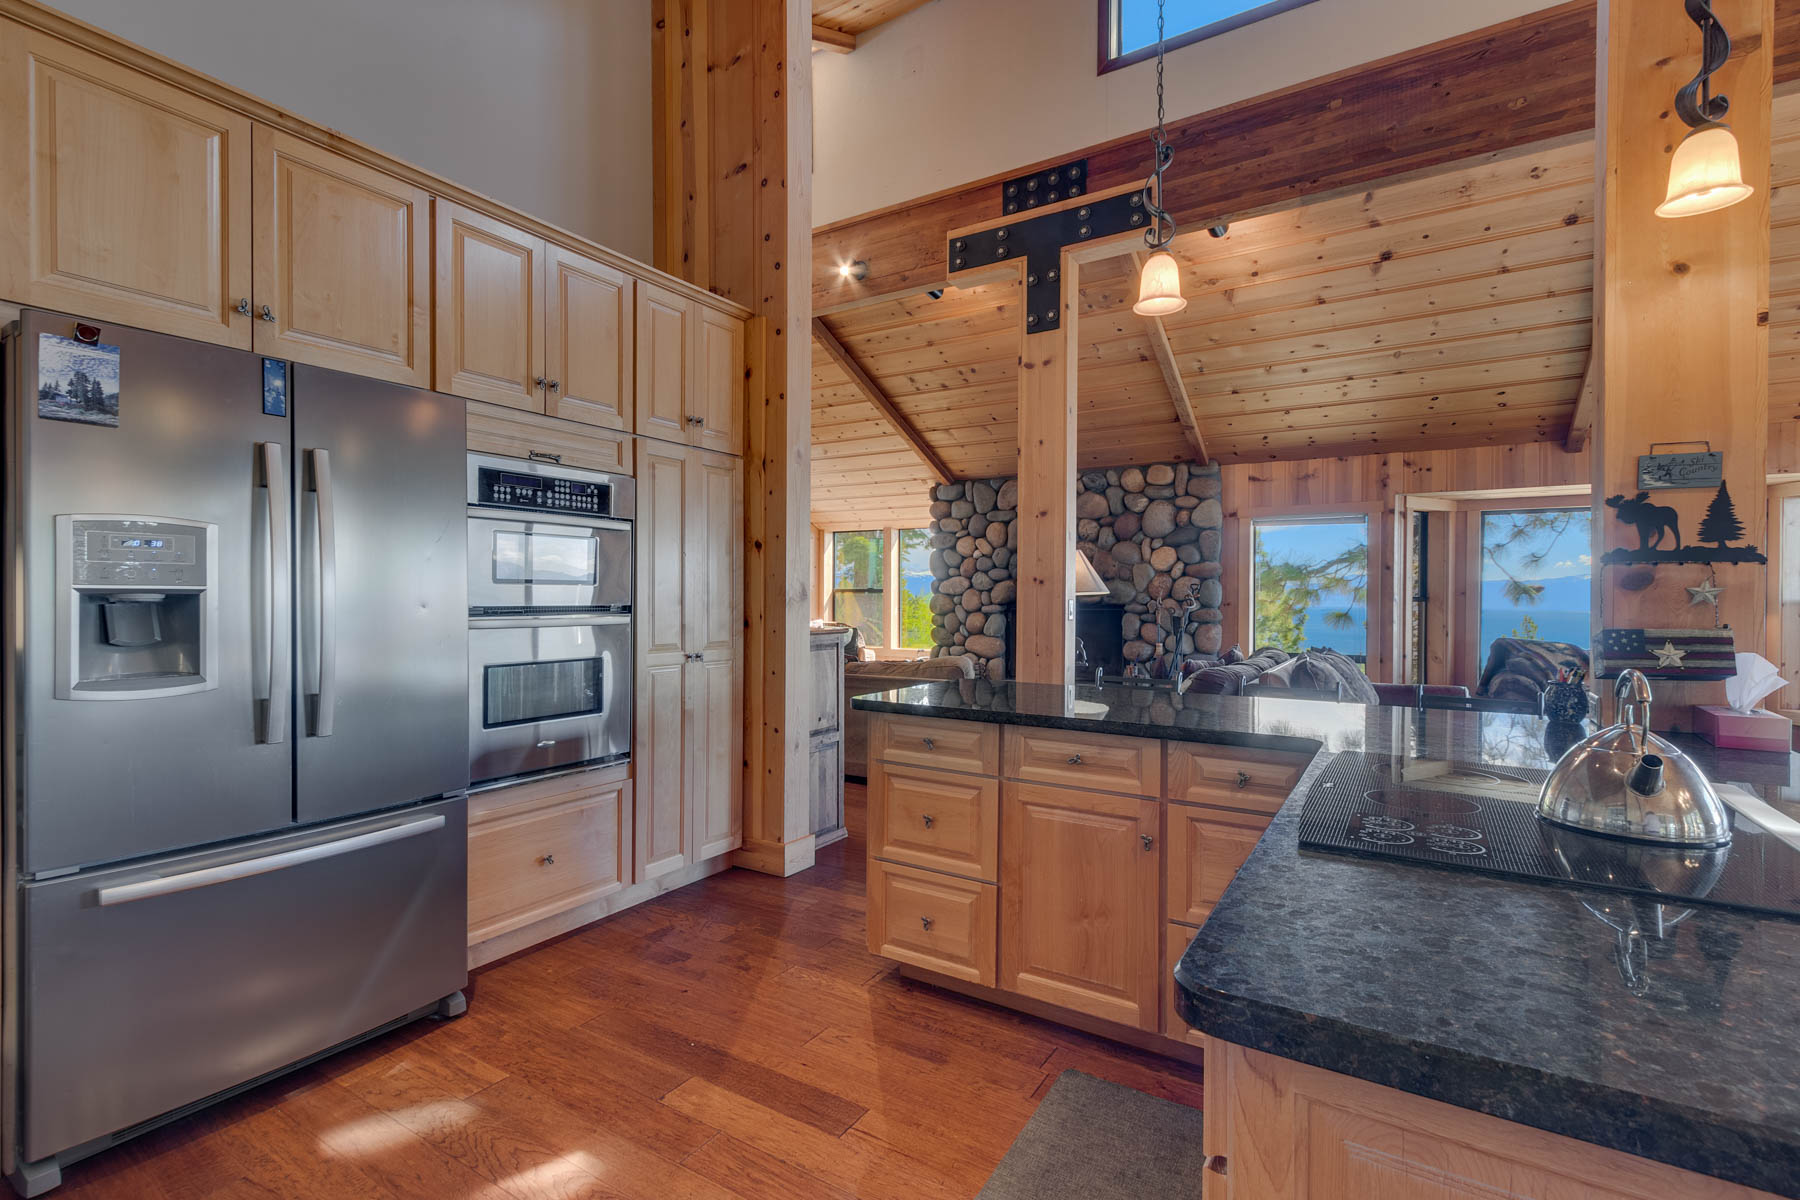 Additional photo for property listing at 1122 Clearview Court, Tahoe City, CA 96145 1122 Clearview Court Tahoe City, California 96145 United States